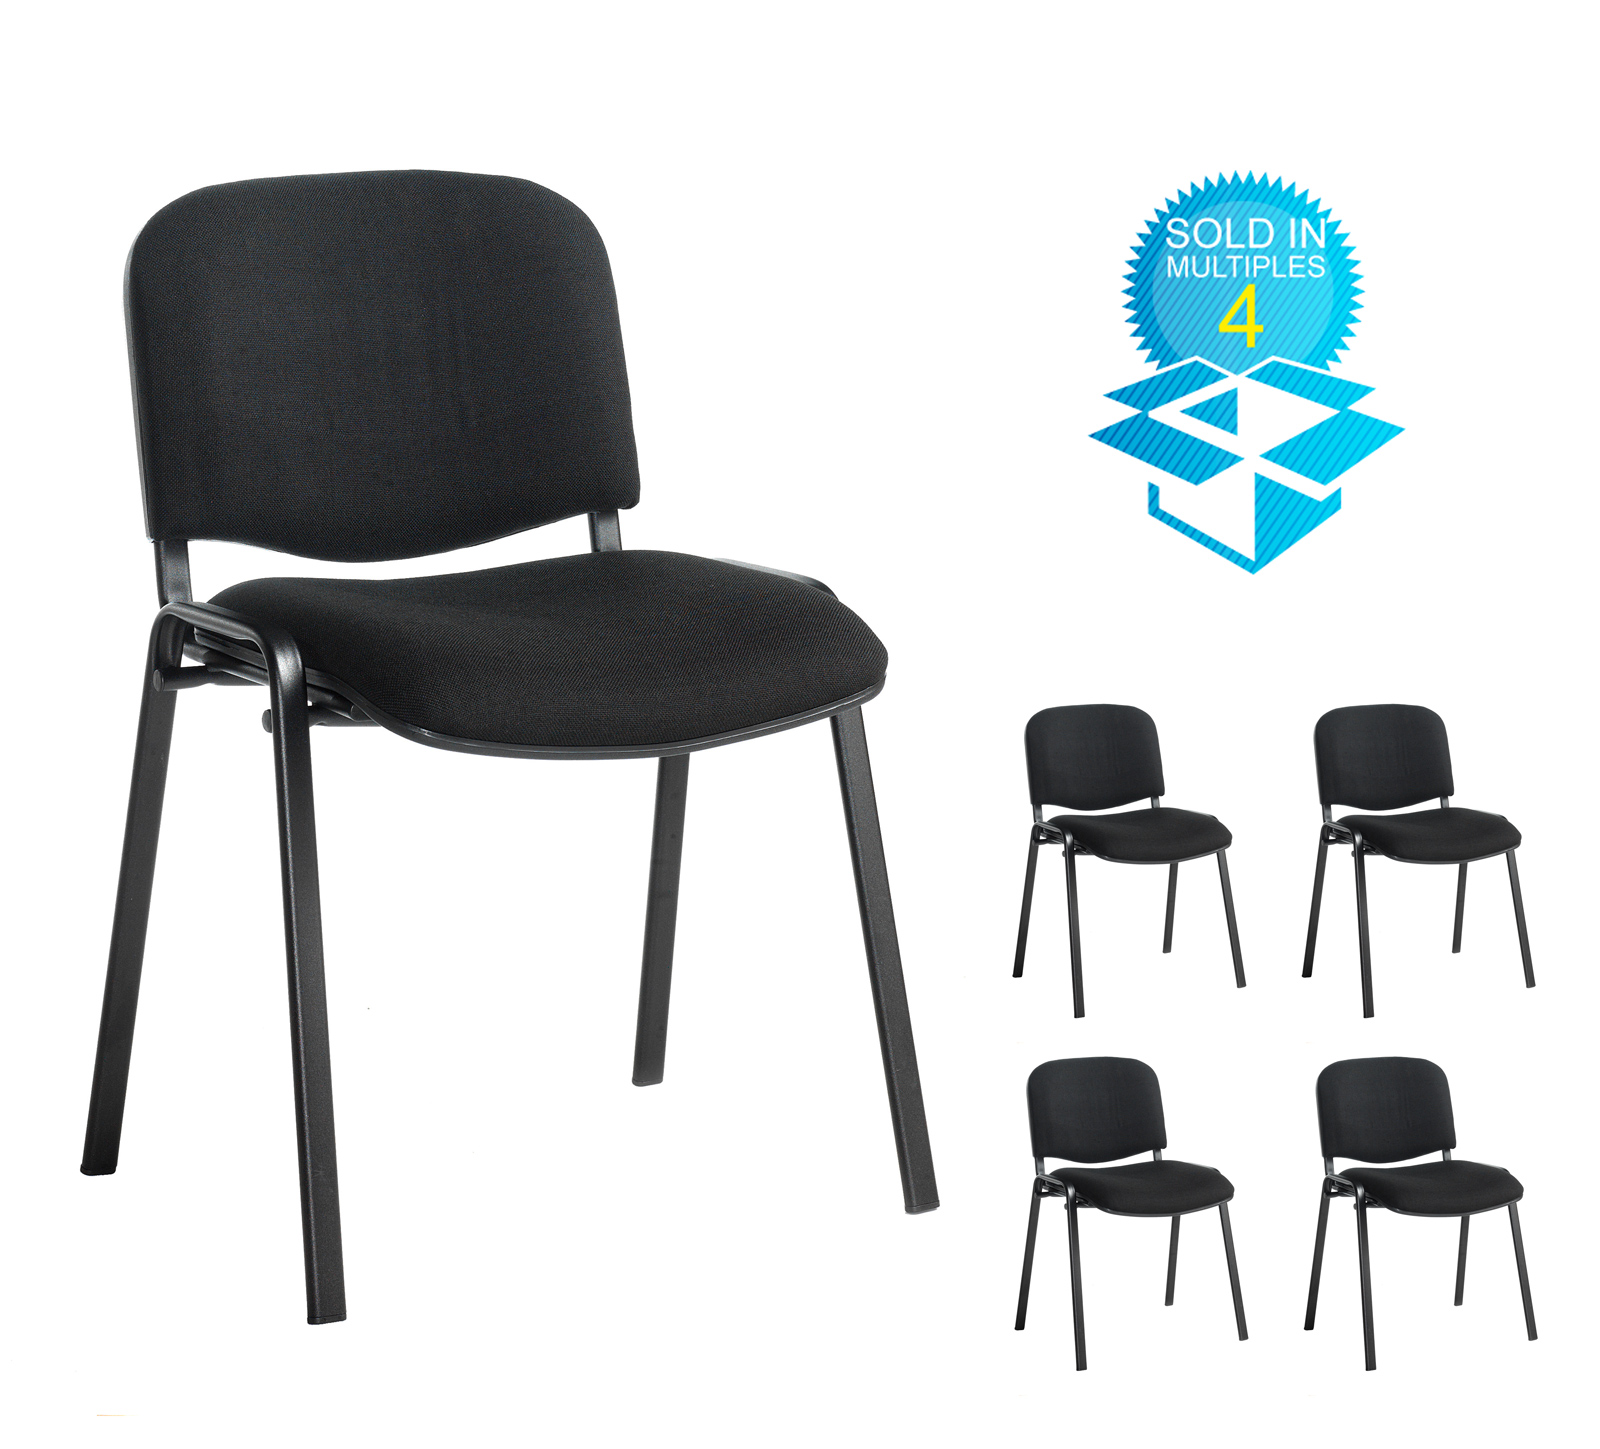 Box of 4 taurus black frame stacking chairs with black fabric